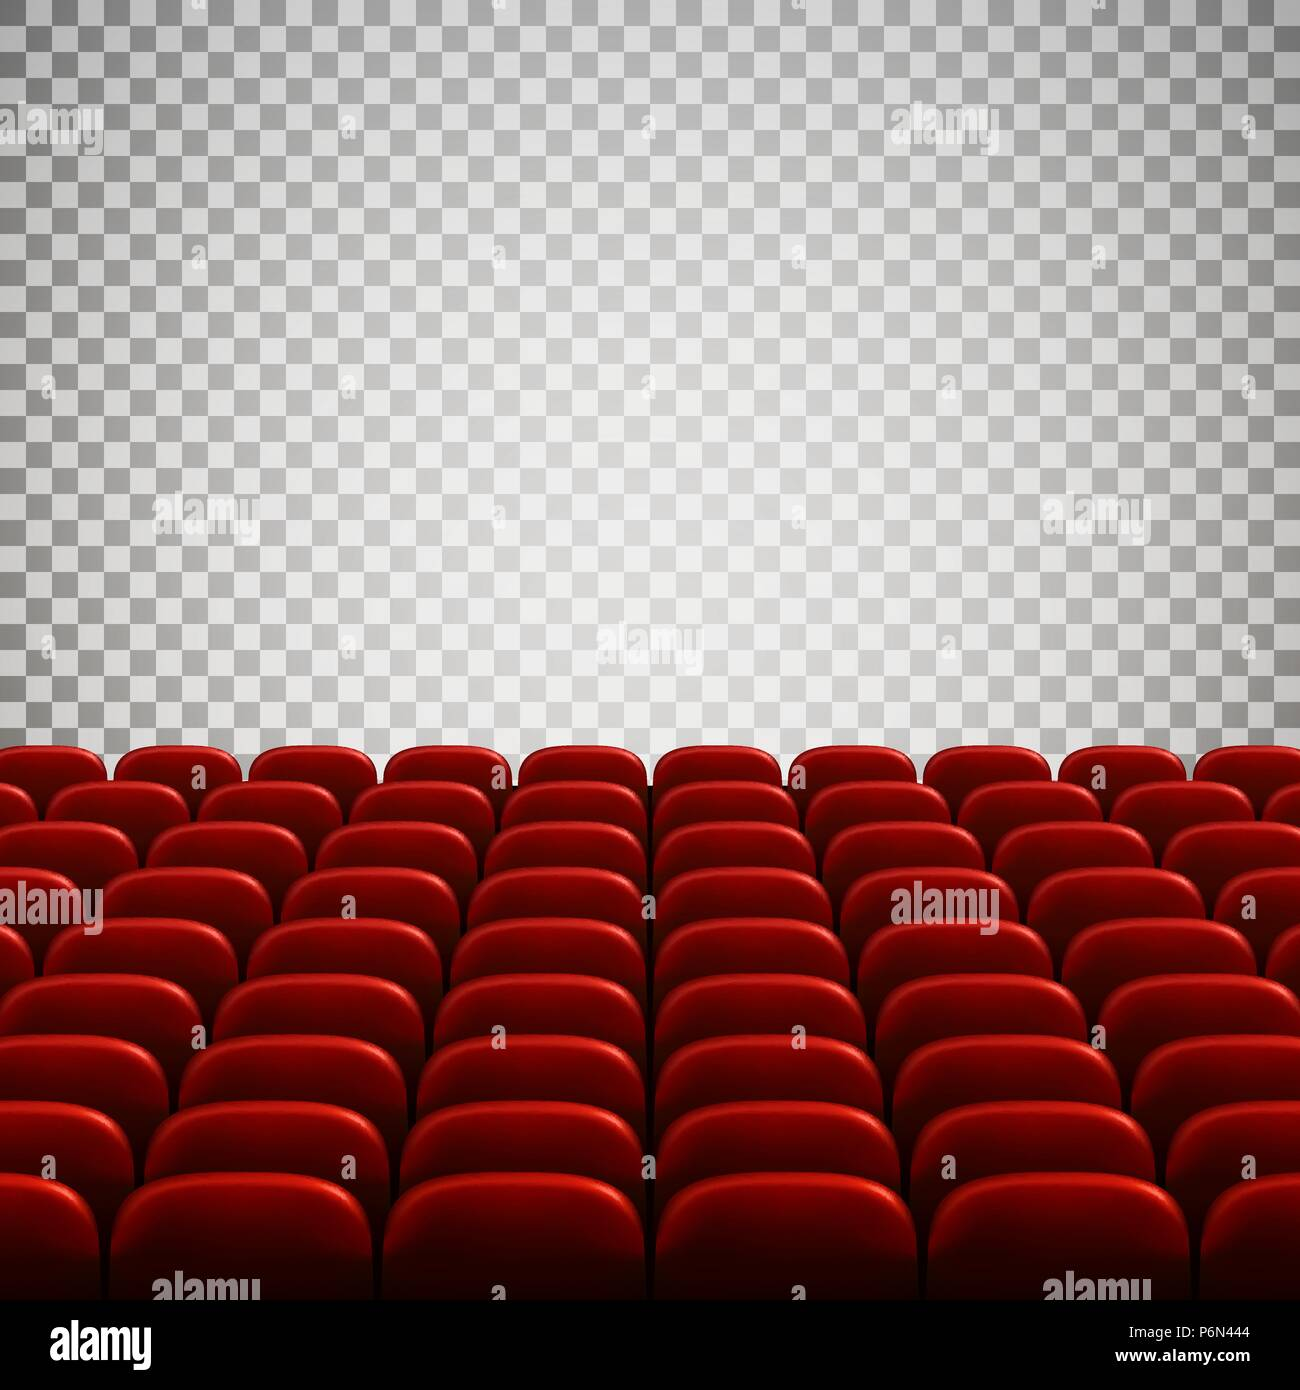 Wide Empty Movie Theater Auditorium With Red Seats Rows Of Red Theater Seats Vector Illustration Isolated On Transparent Background Stock Vector Image Art Alamy